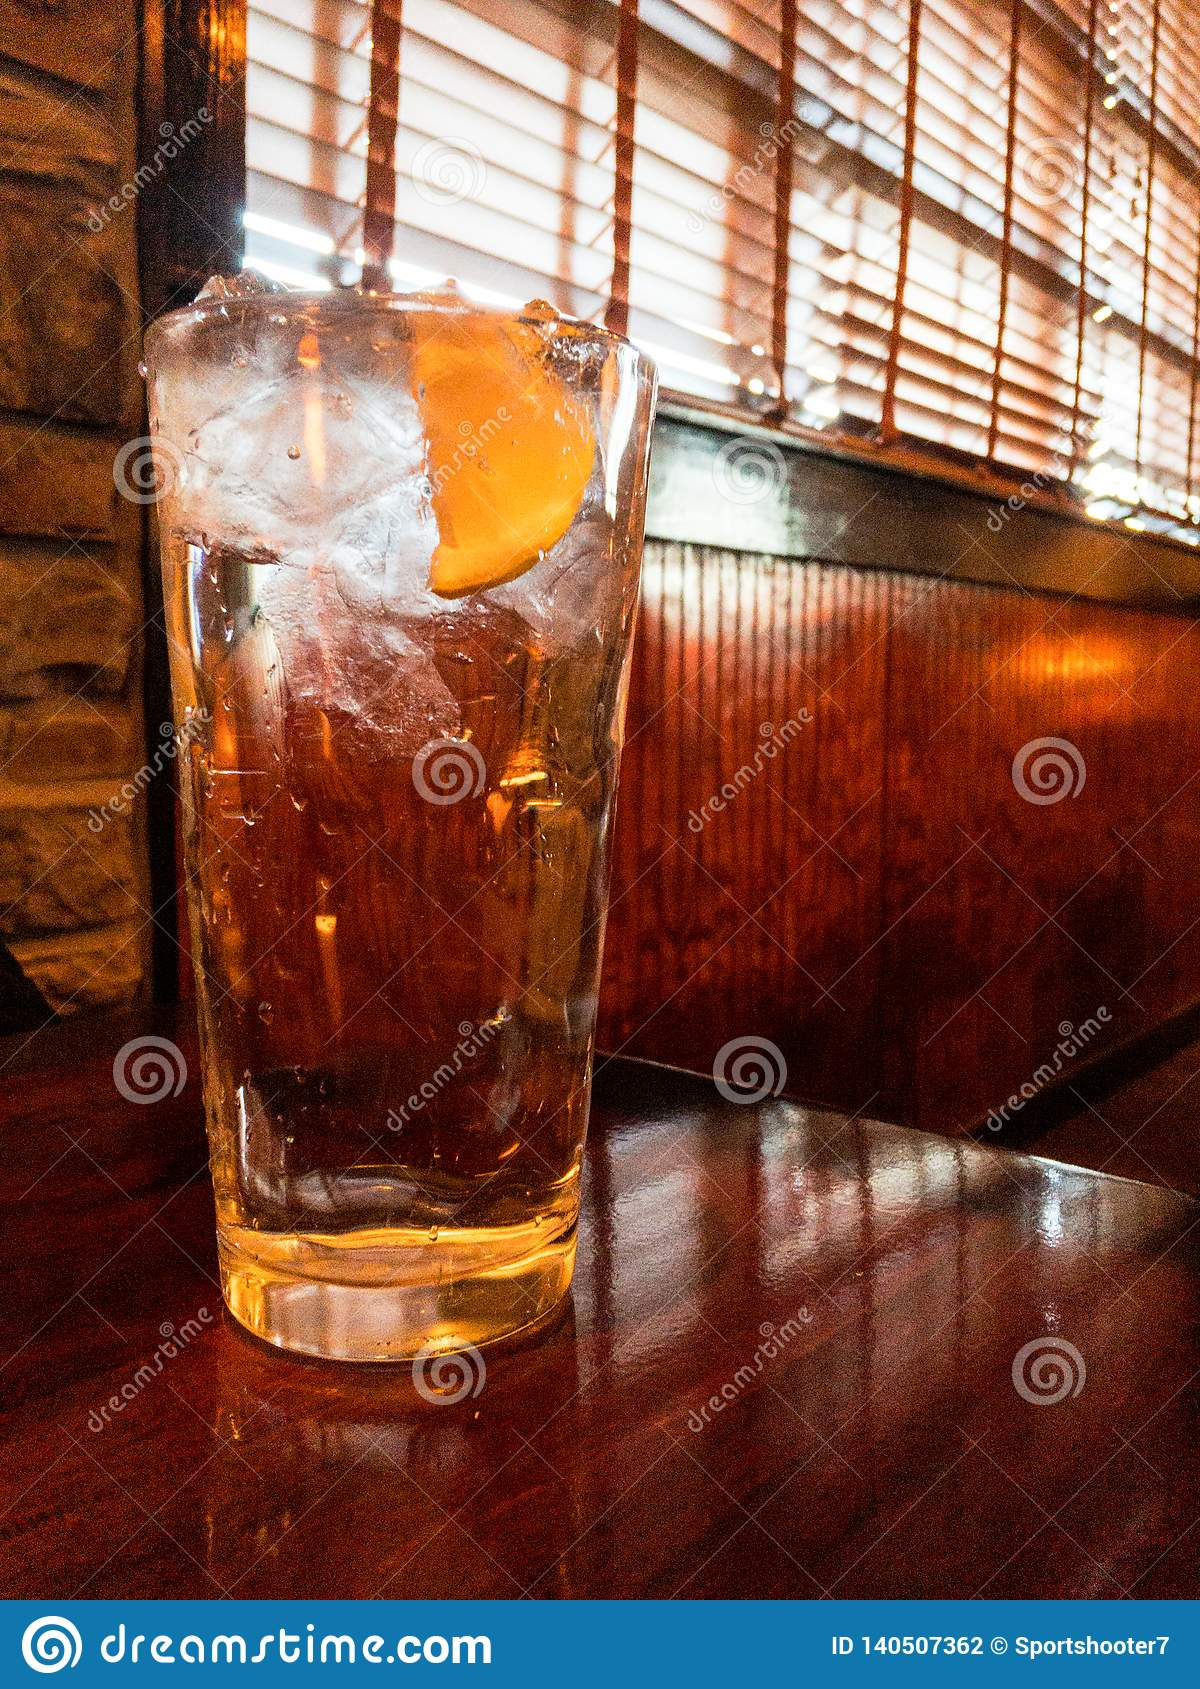 Glass of ice water with lemon on wooden table in restaurant setting. no people.